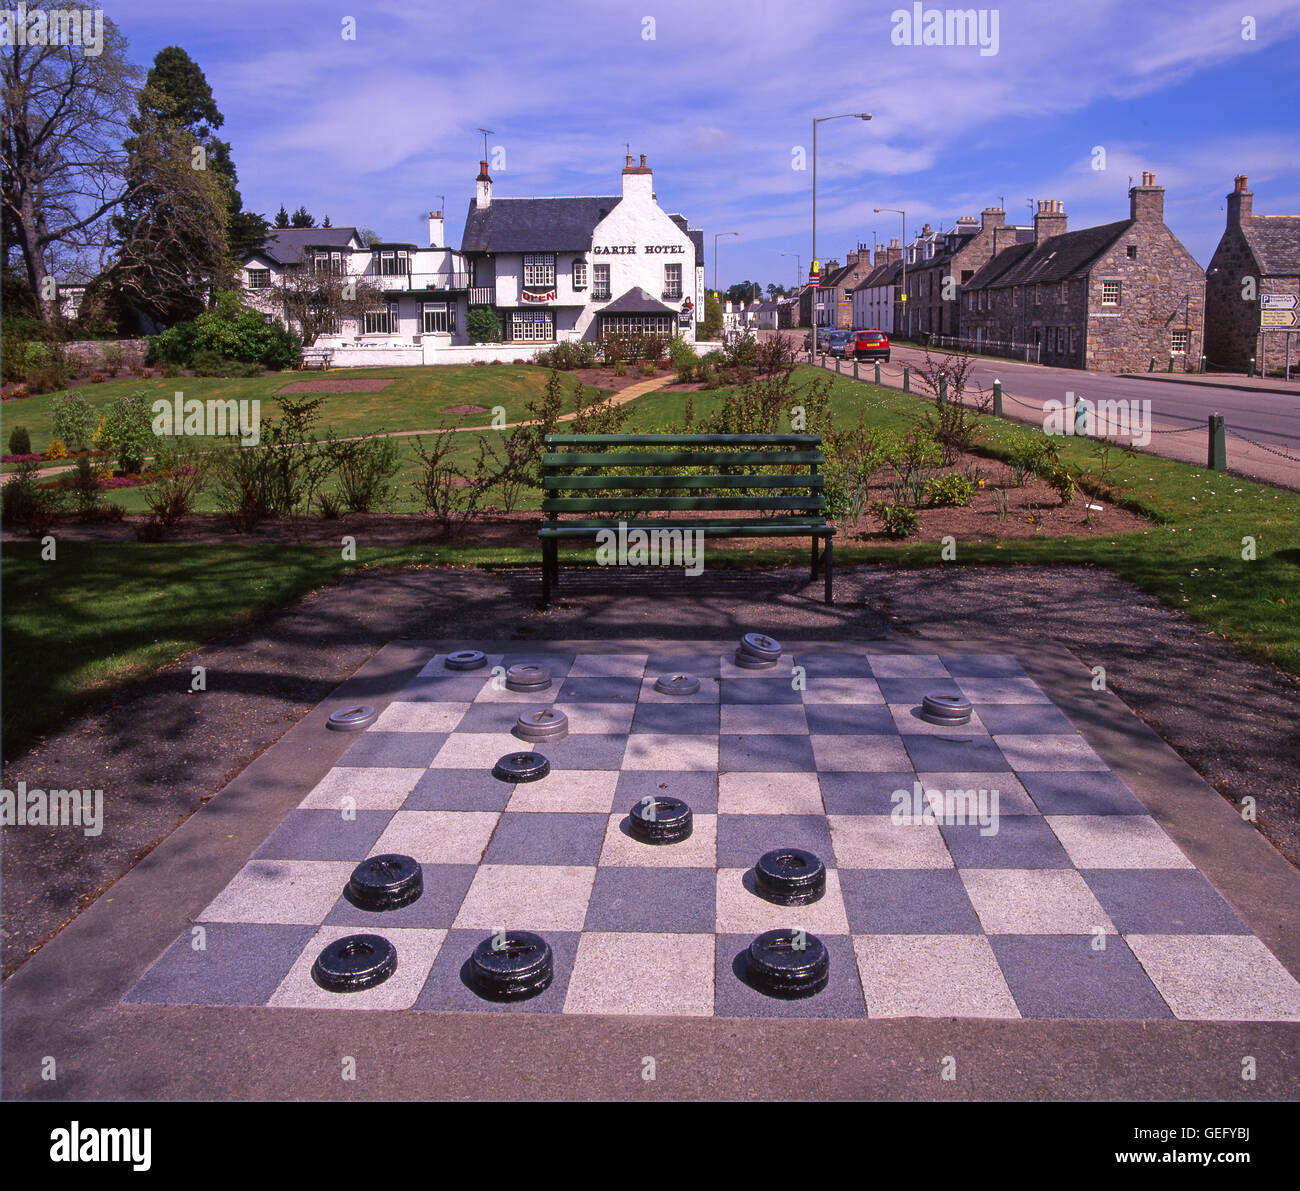 Grantown On Spey, Moray, Scotland - Stock Image